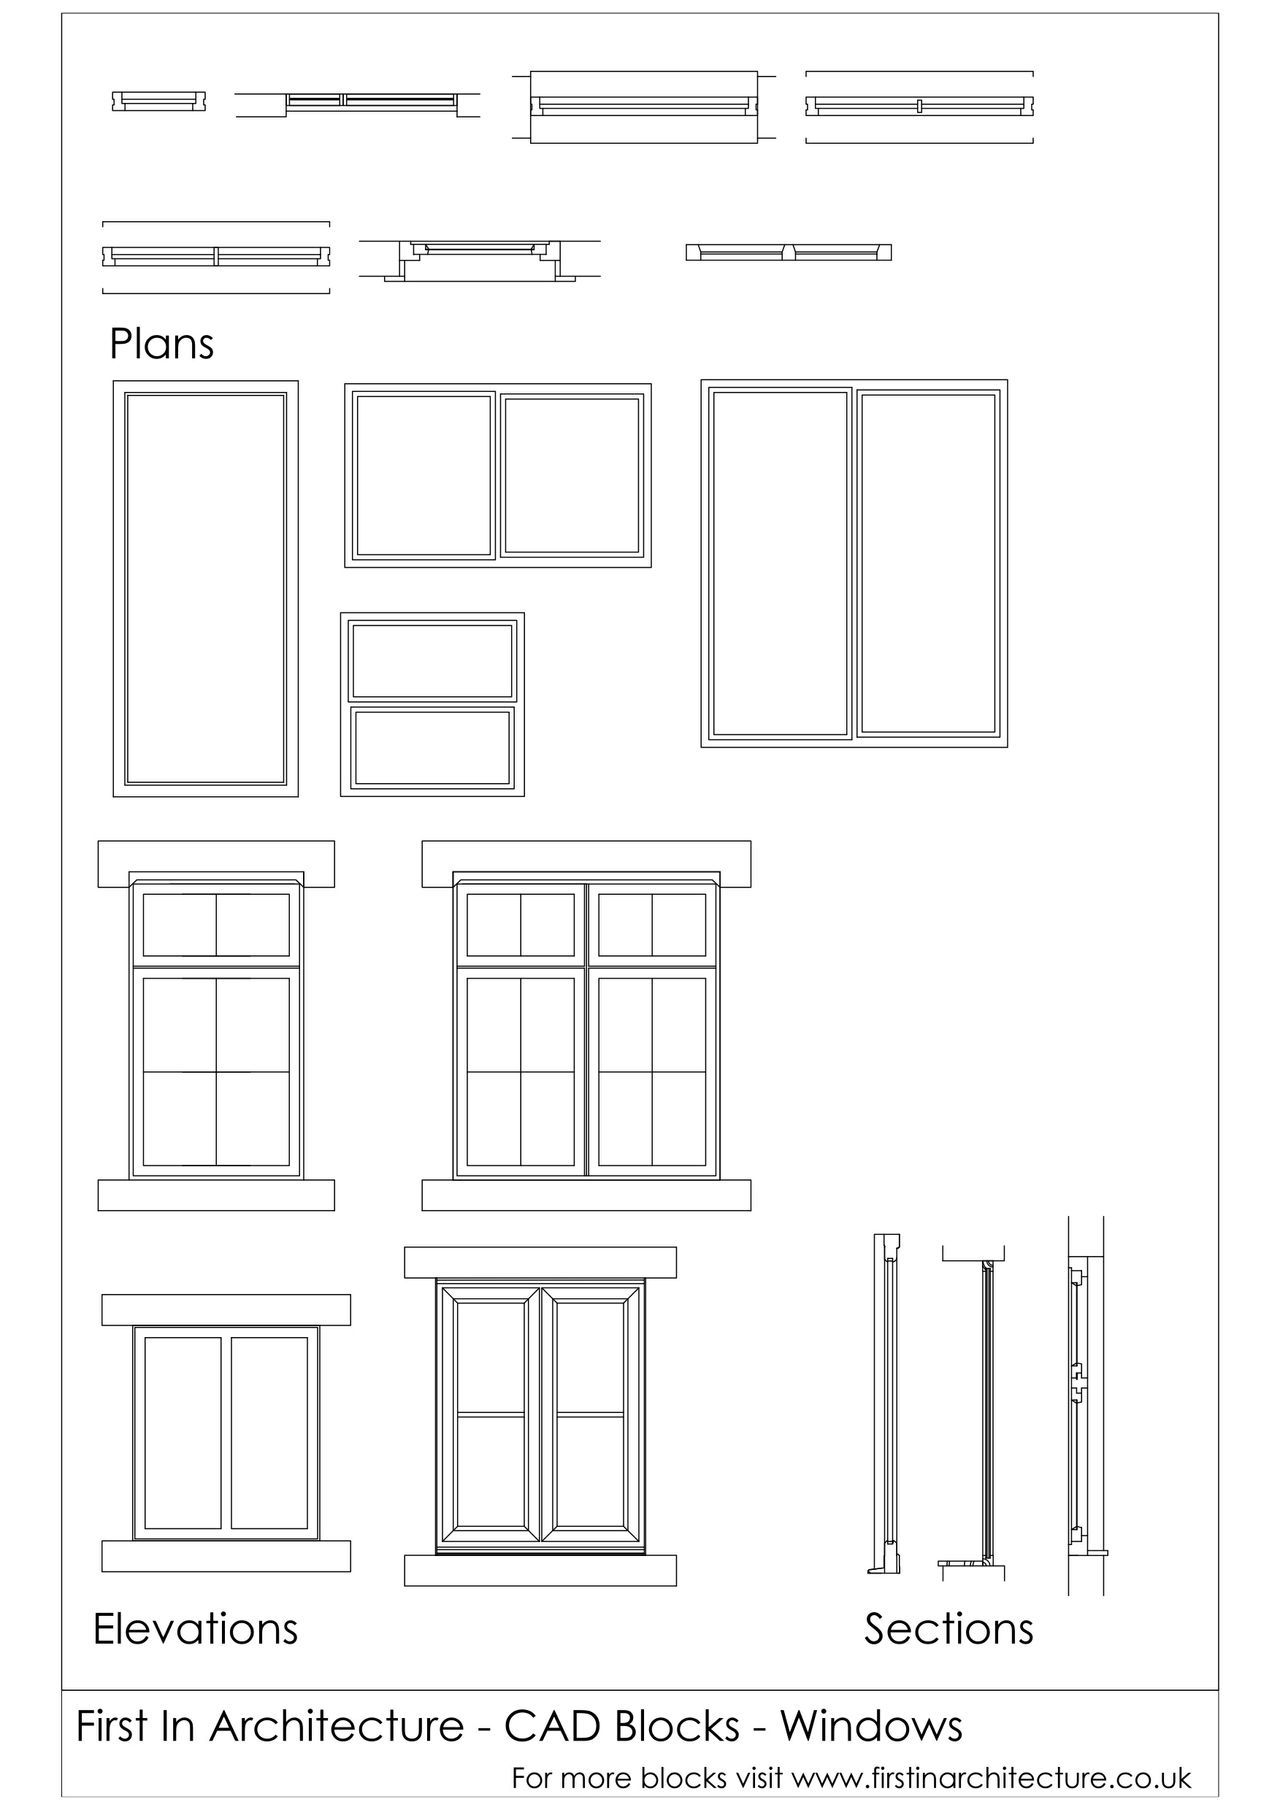 Elevation Plan In Autocad : Cad blocks windows in cadd pinterest